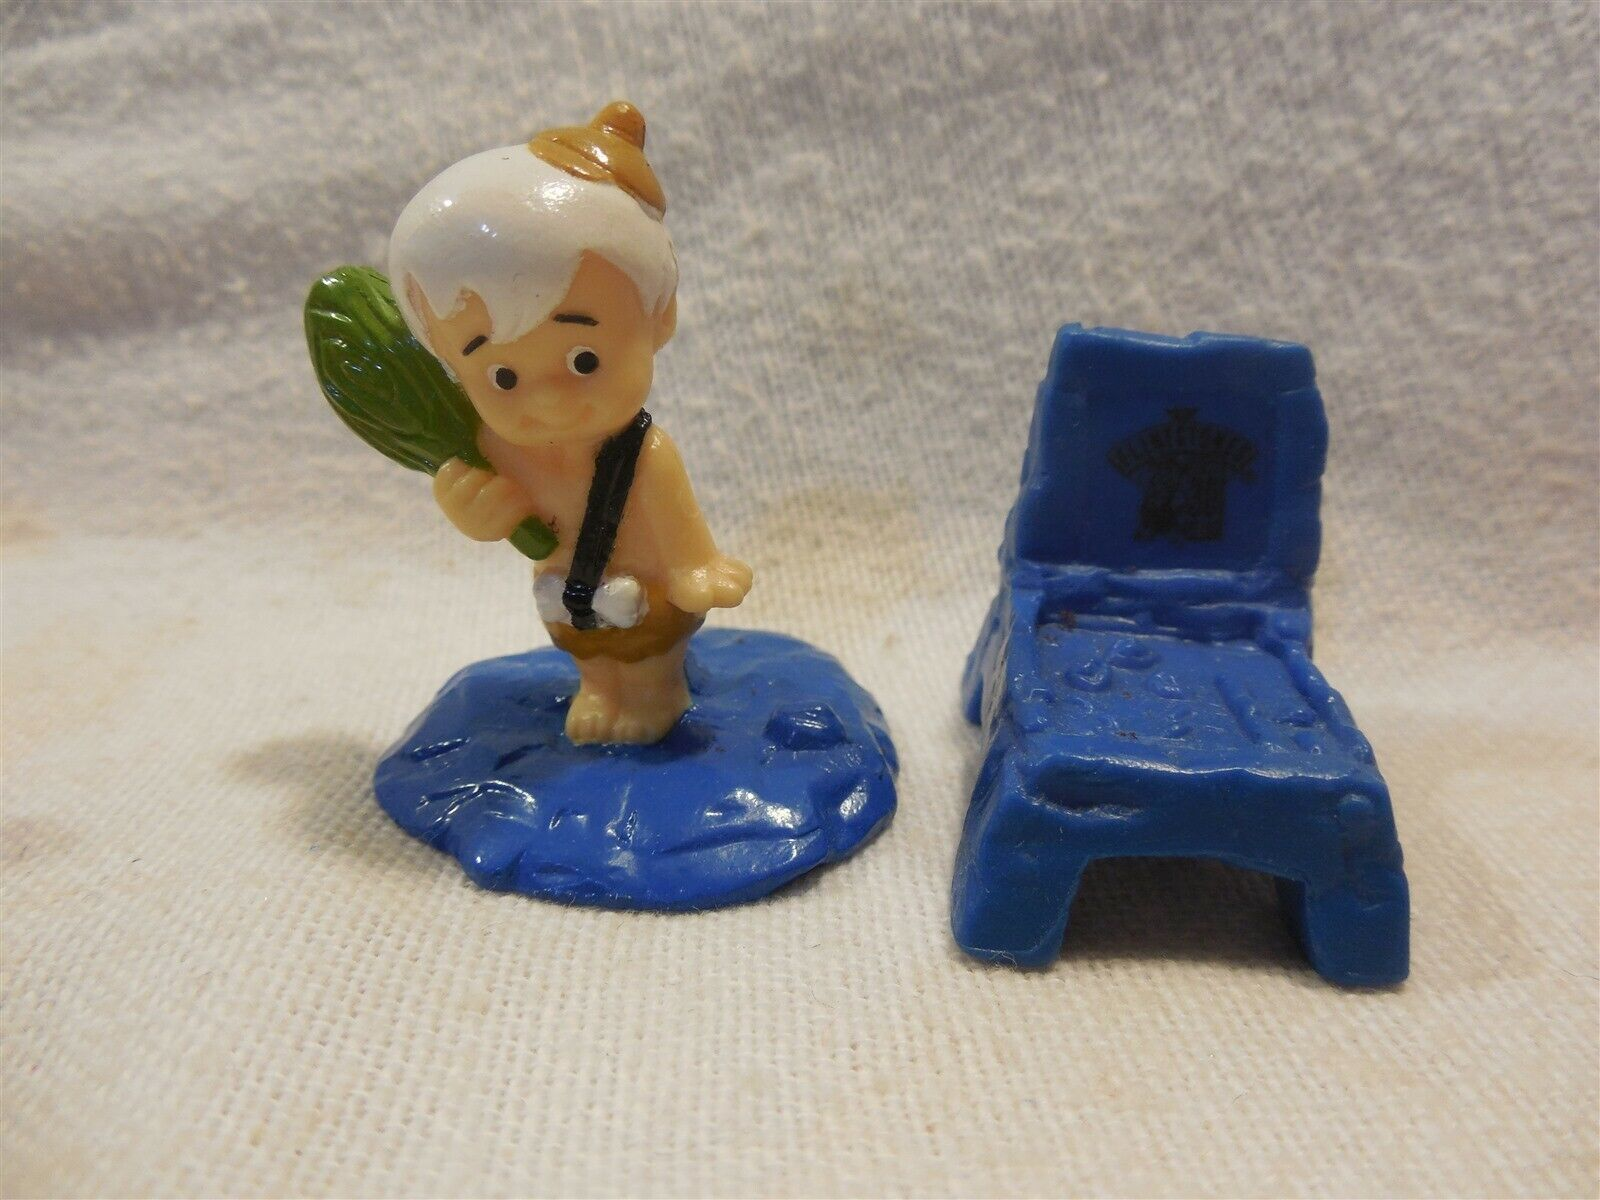 Flintstones 1991 Hardee's Complete Kid's Meal Premium Set of 5